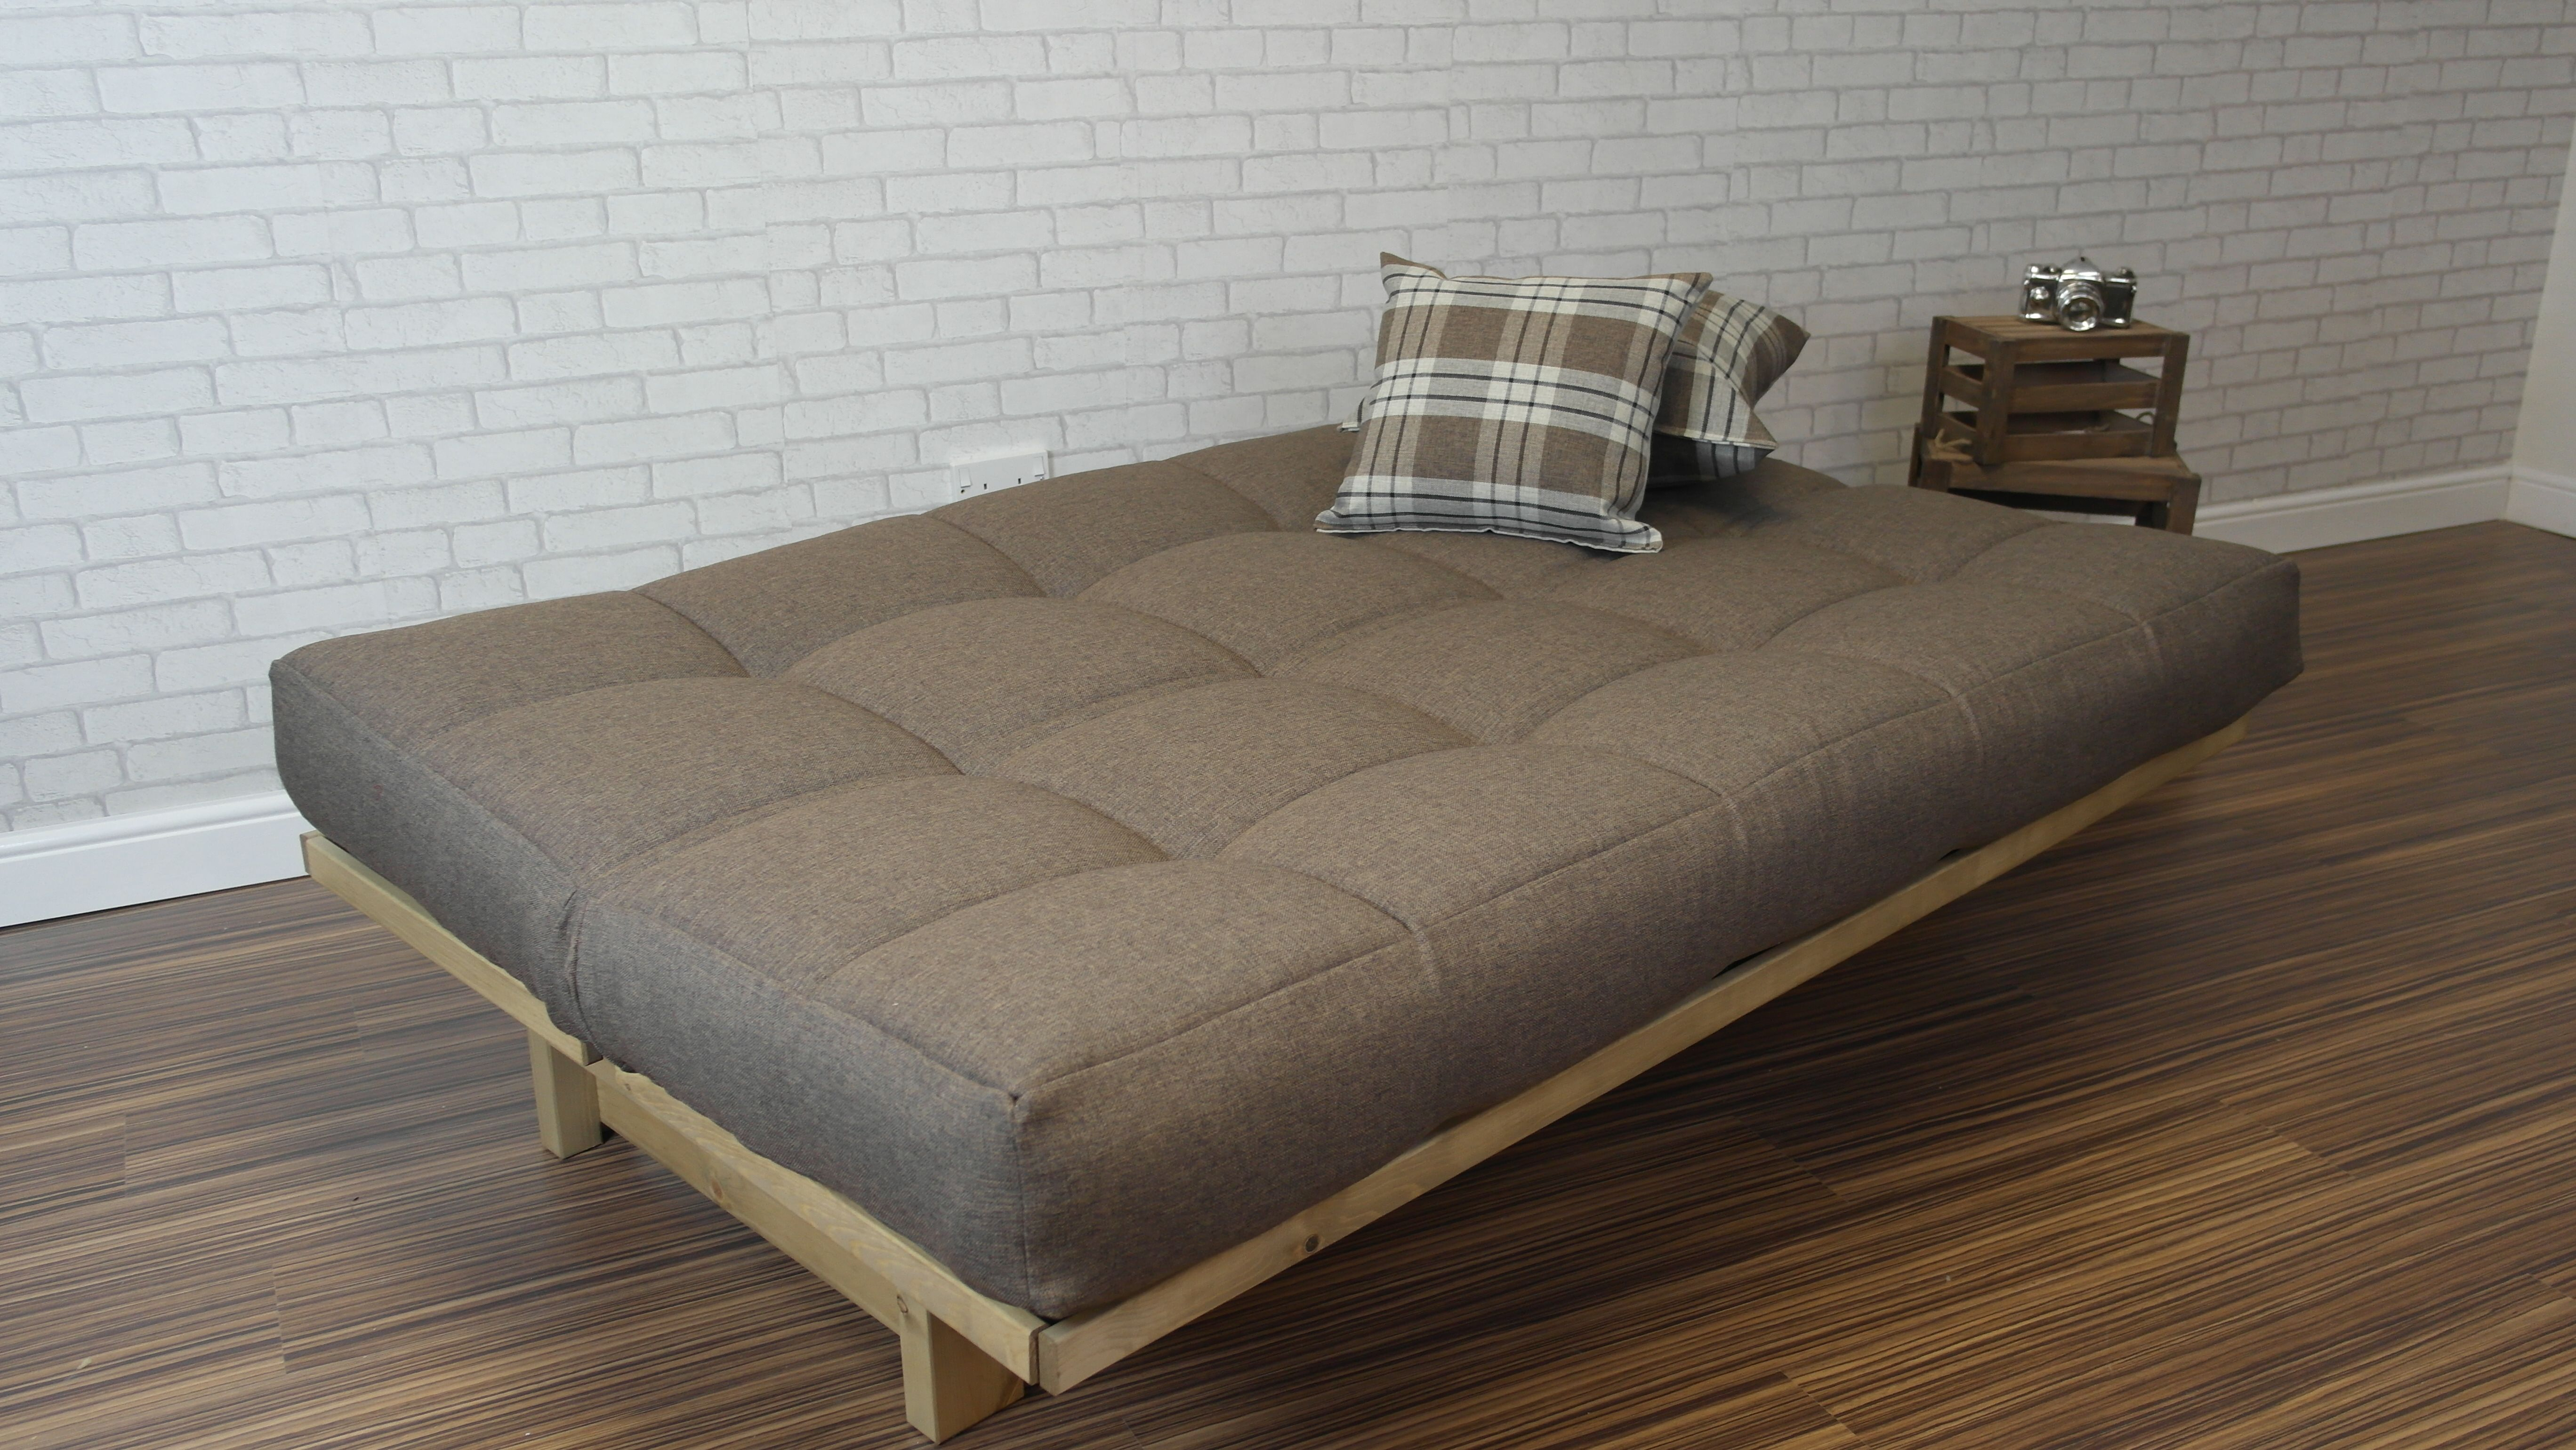 Strange Belvedere Sofa Bed With A Mattress Of 130Cm X 192Cm Ideal Camellatalisay Diy Chair Ideas Camellatalisaycom